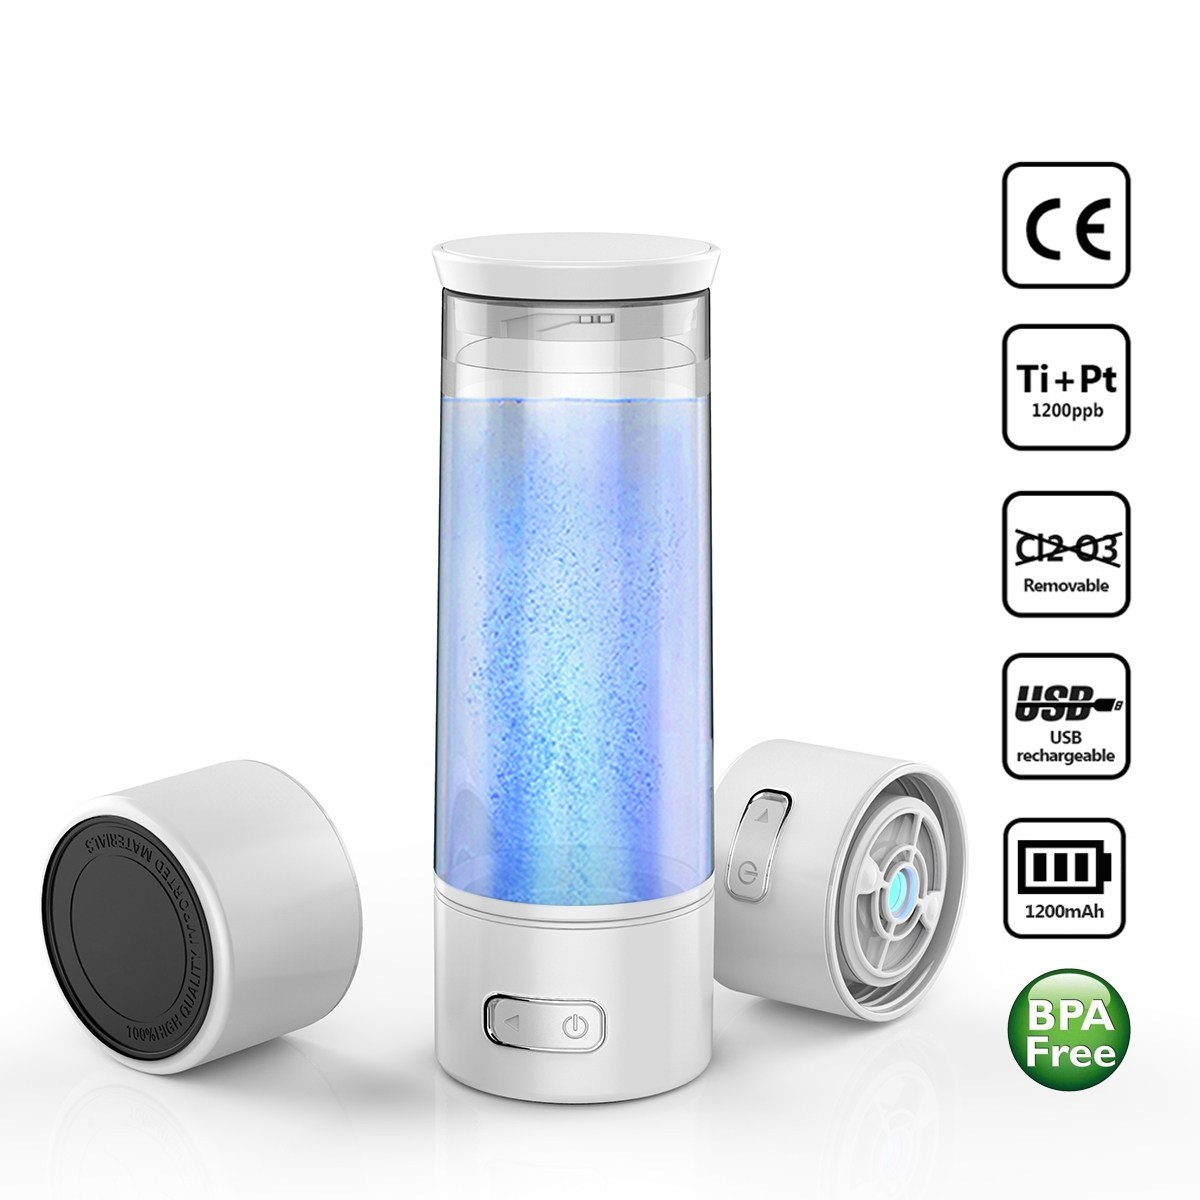 USB Rechargable High-Rich Hydrogen Water Bottle Ionizer Maker Generator Hydrogen Oxygen Separation Alkaline Energy Cup Filter new arrival hydrogen generator hydrogen rich water machine hydrogen generating maker water filters ionizer 2 0l 100 240v 5w hot